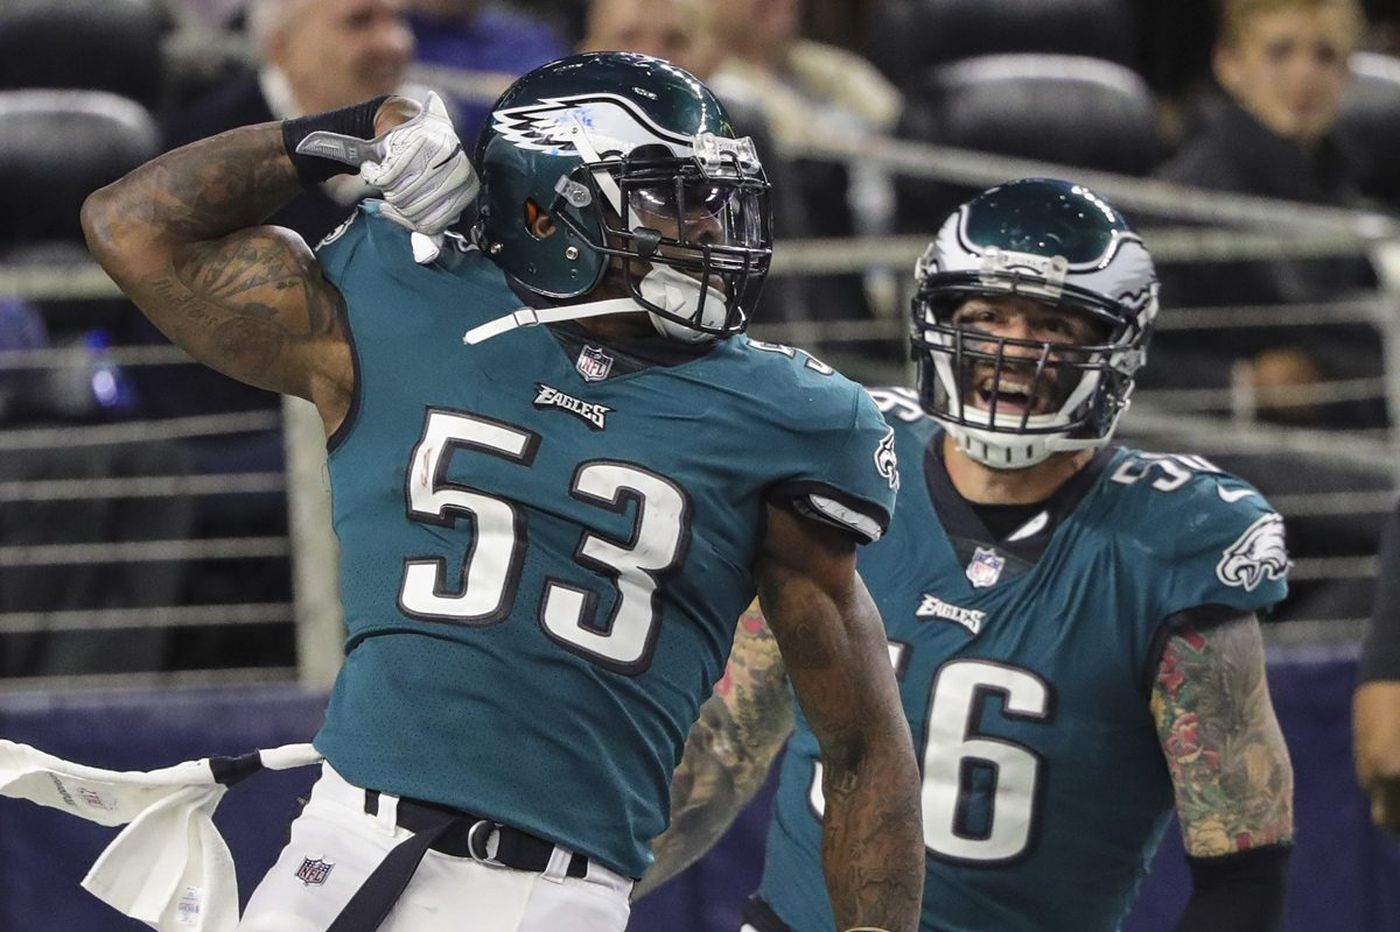 Despite blowout, Eagles-Cowboys draw monster ratings for NBC